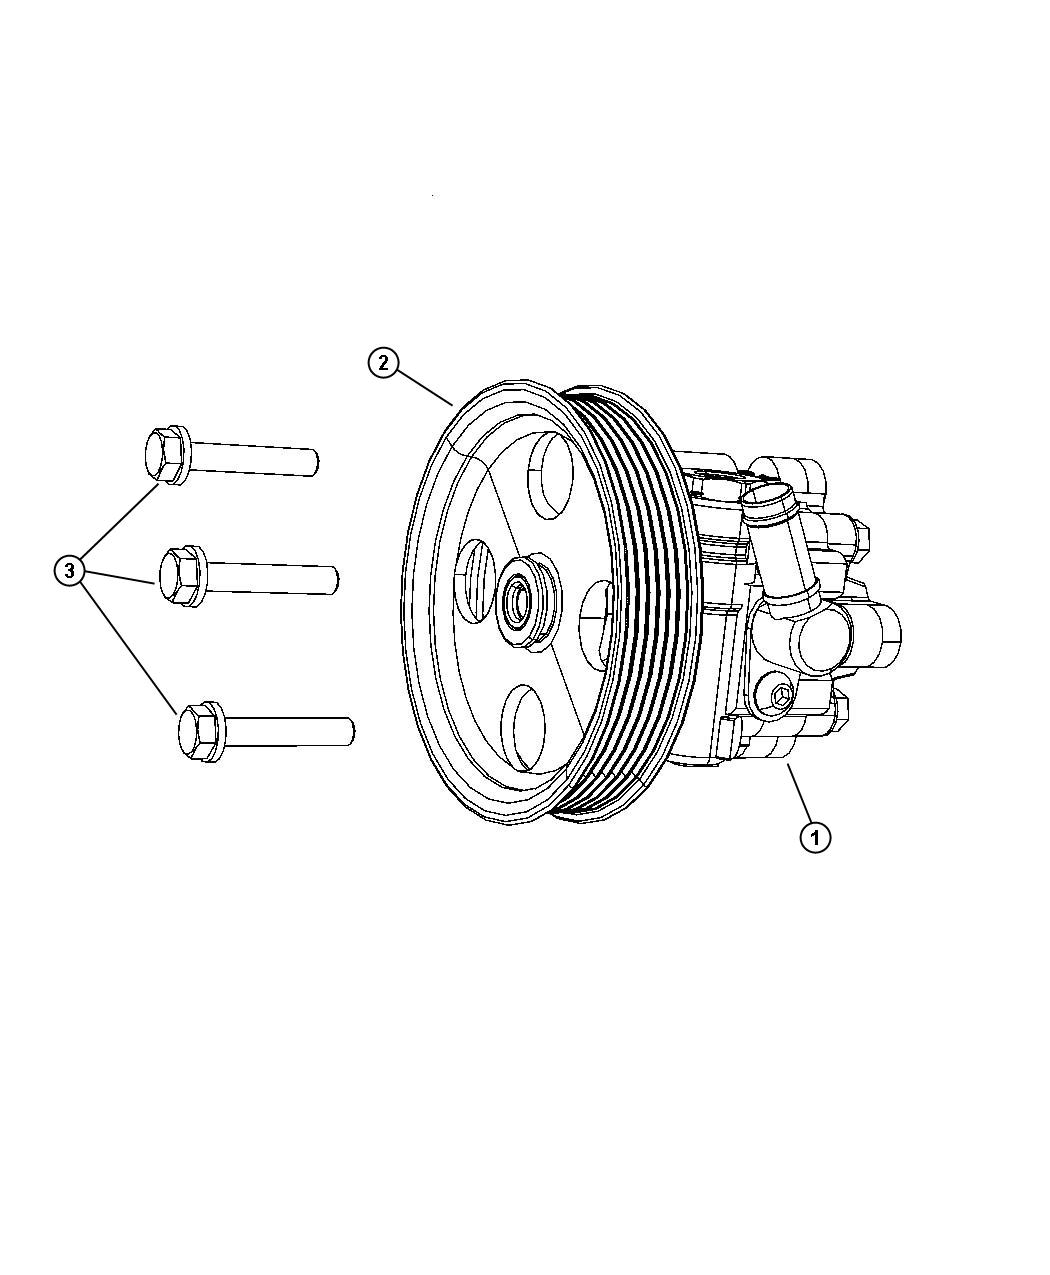 2010 Chrysler Town & Country Pump. Power steering